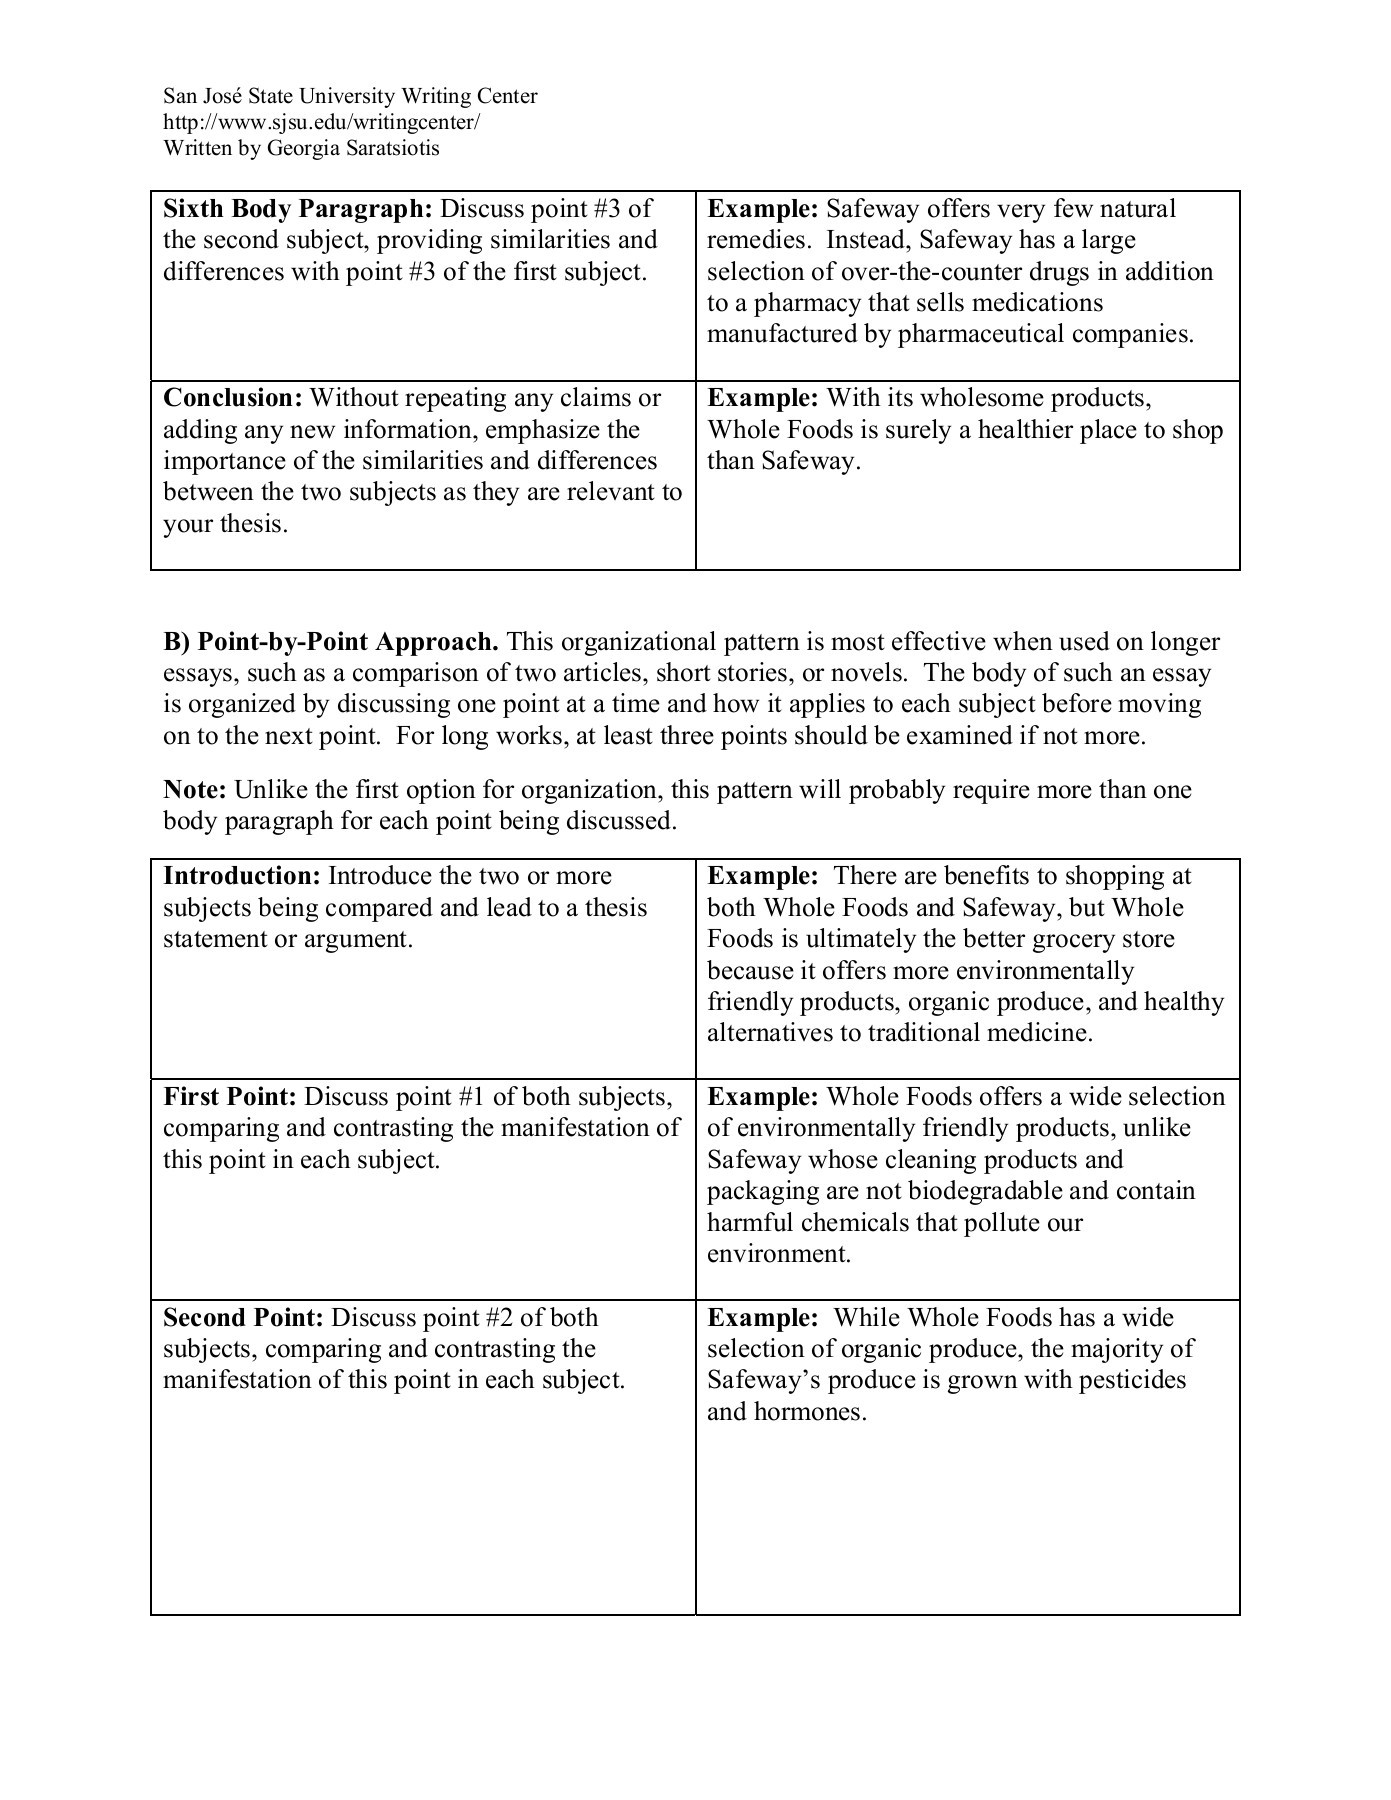 Two Good Short Stories To Compare And Contrast How To